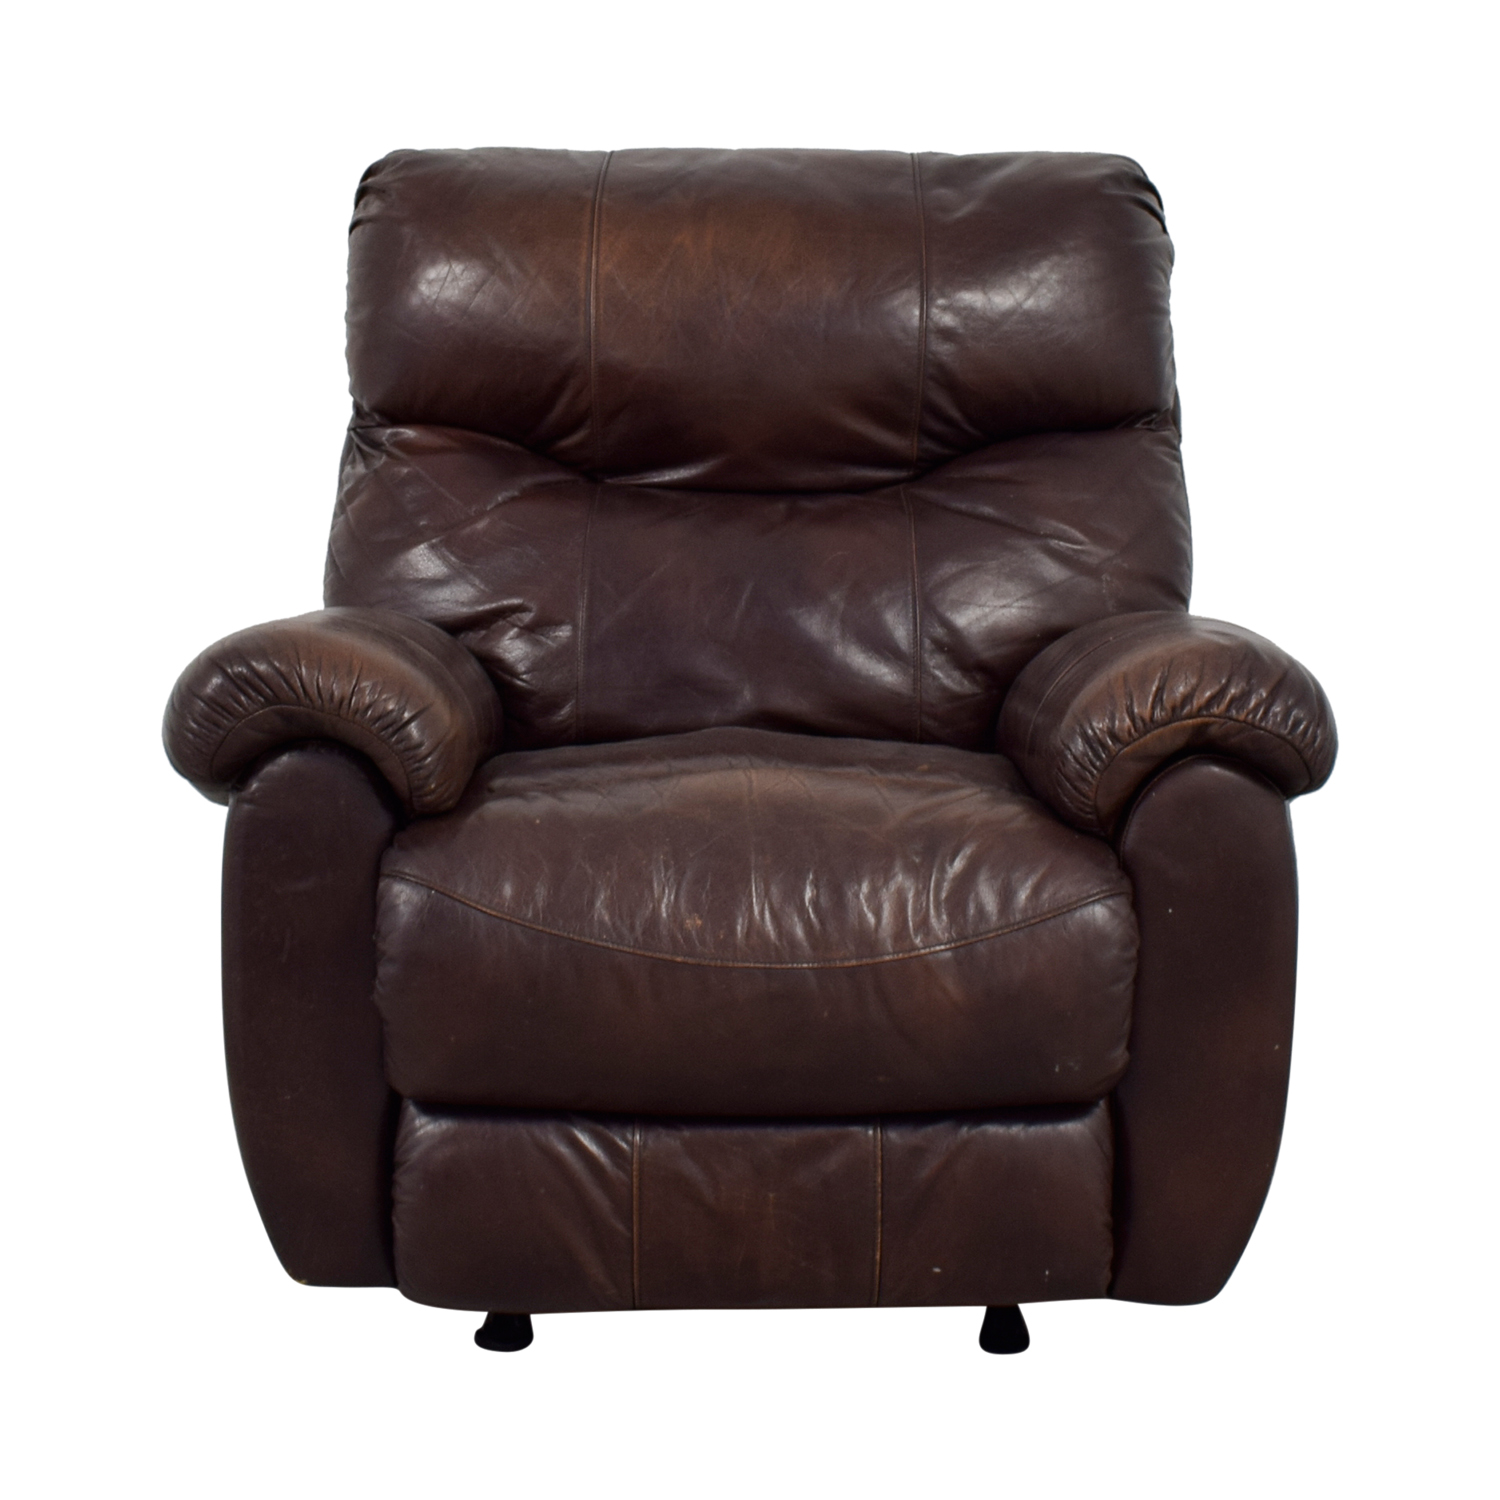 Brown Leather Recliner with Pillowed Arms coupon